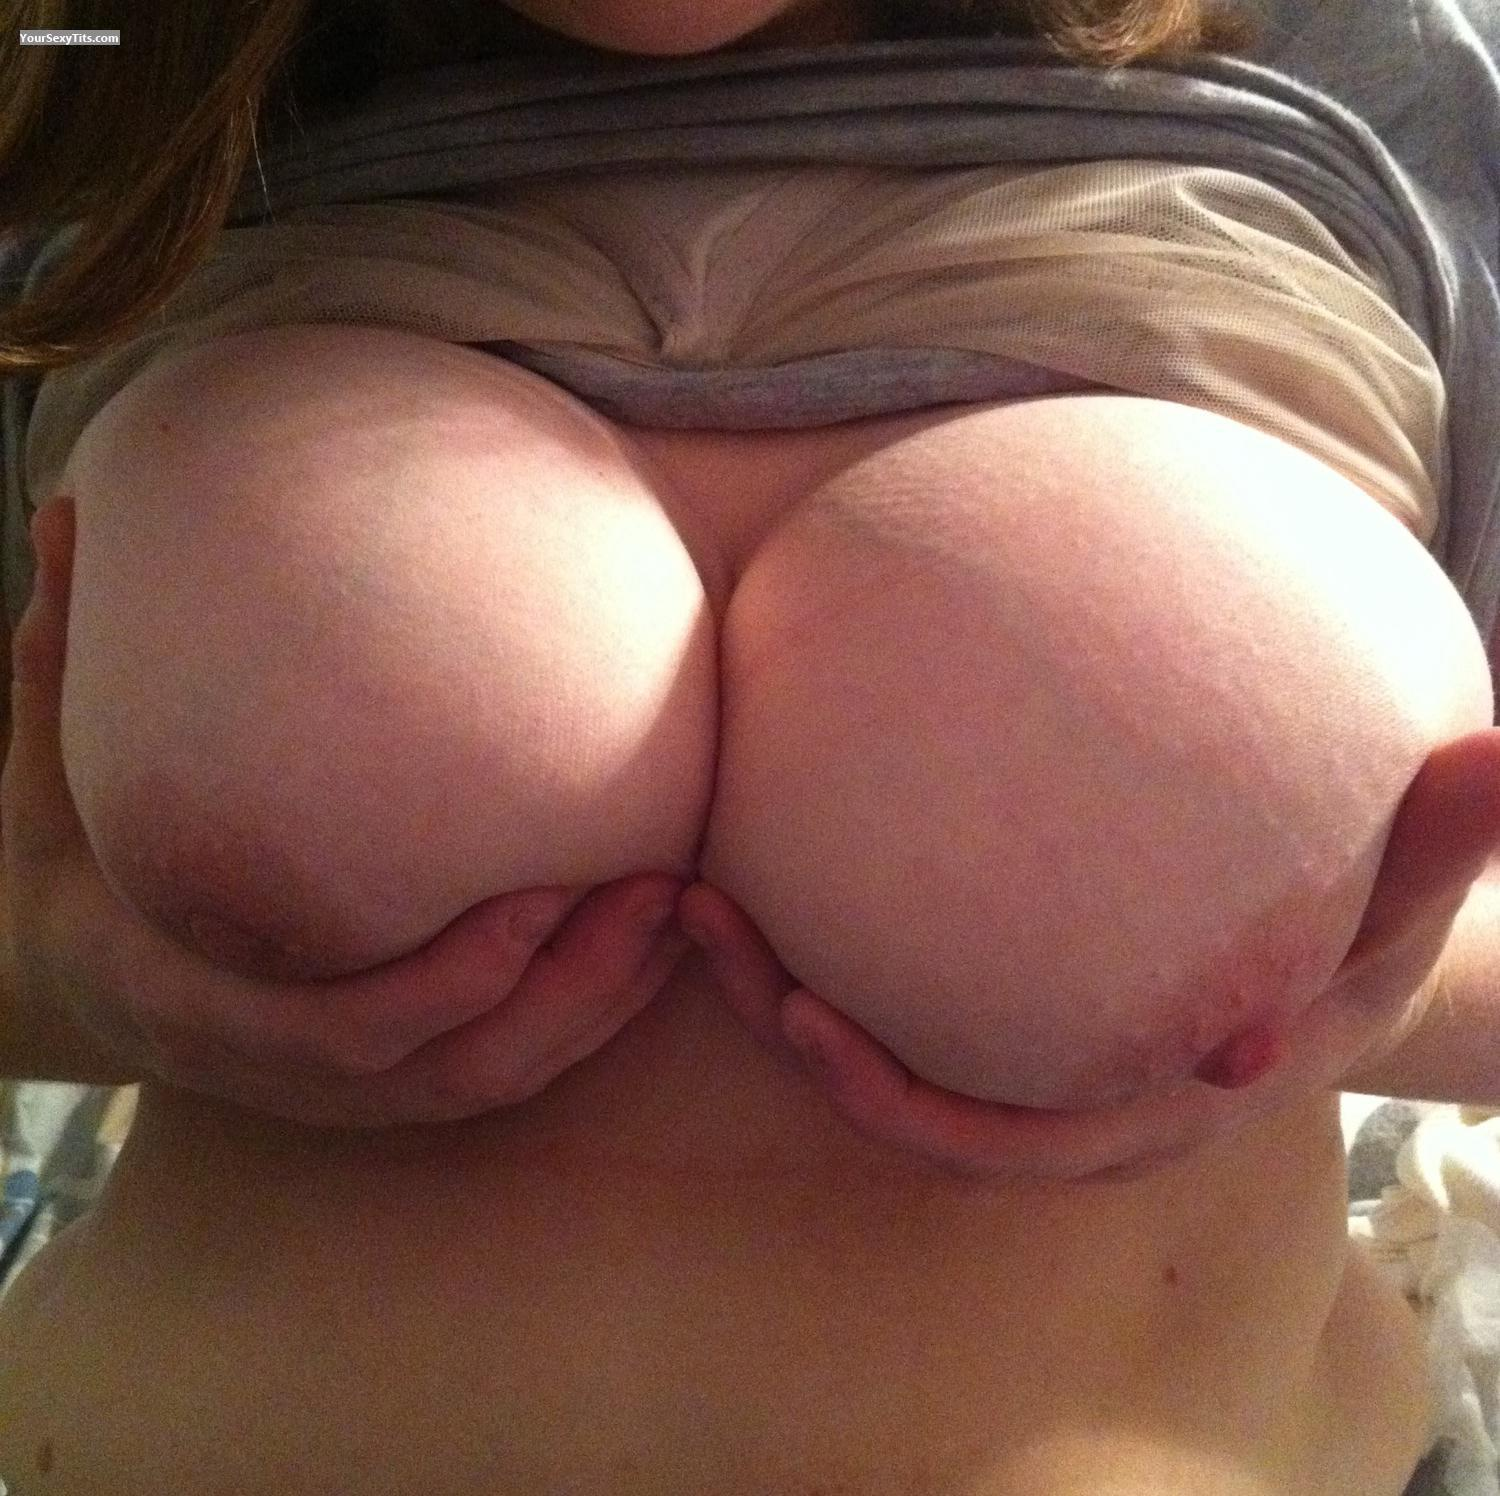 Tit Flash: Very Big Tits By IPhone - Dee Dee from United States